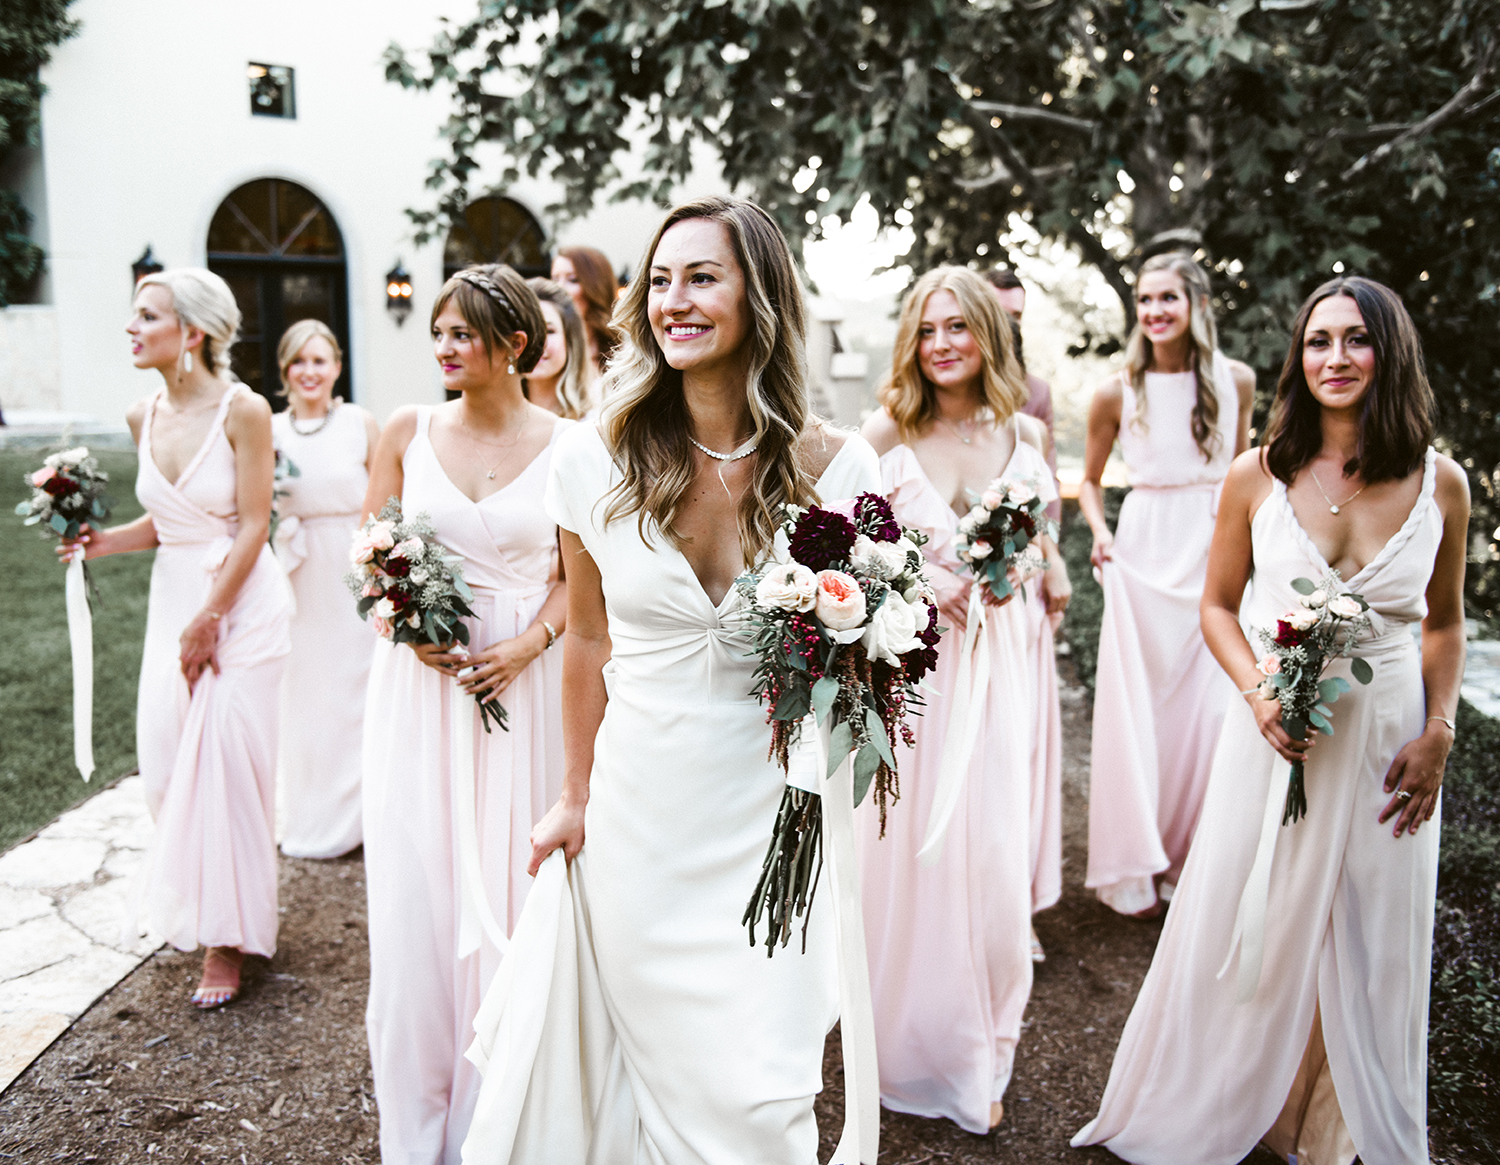 livvyland-blog-olivia-watson-wedding-villa-del-lago-austin-texas-fall-blush-burgundy-classic-romantic-joanna-august-mismatched-bridesmaid-dresses-2